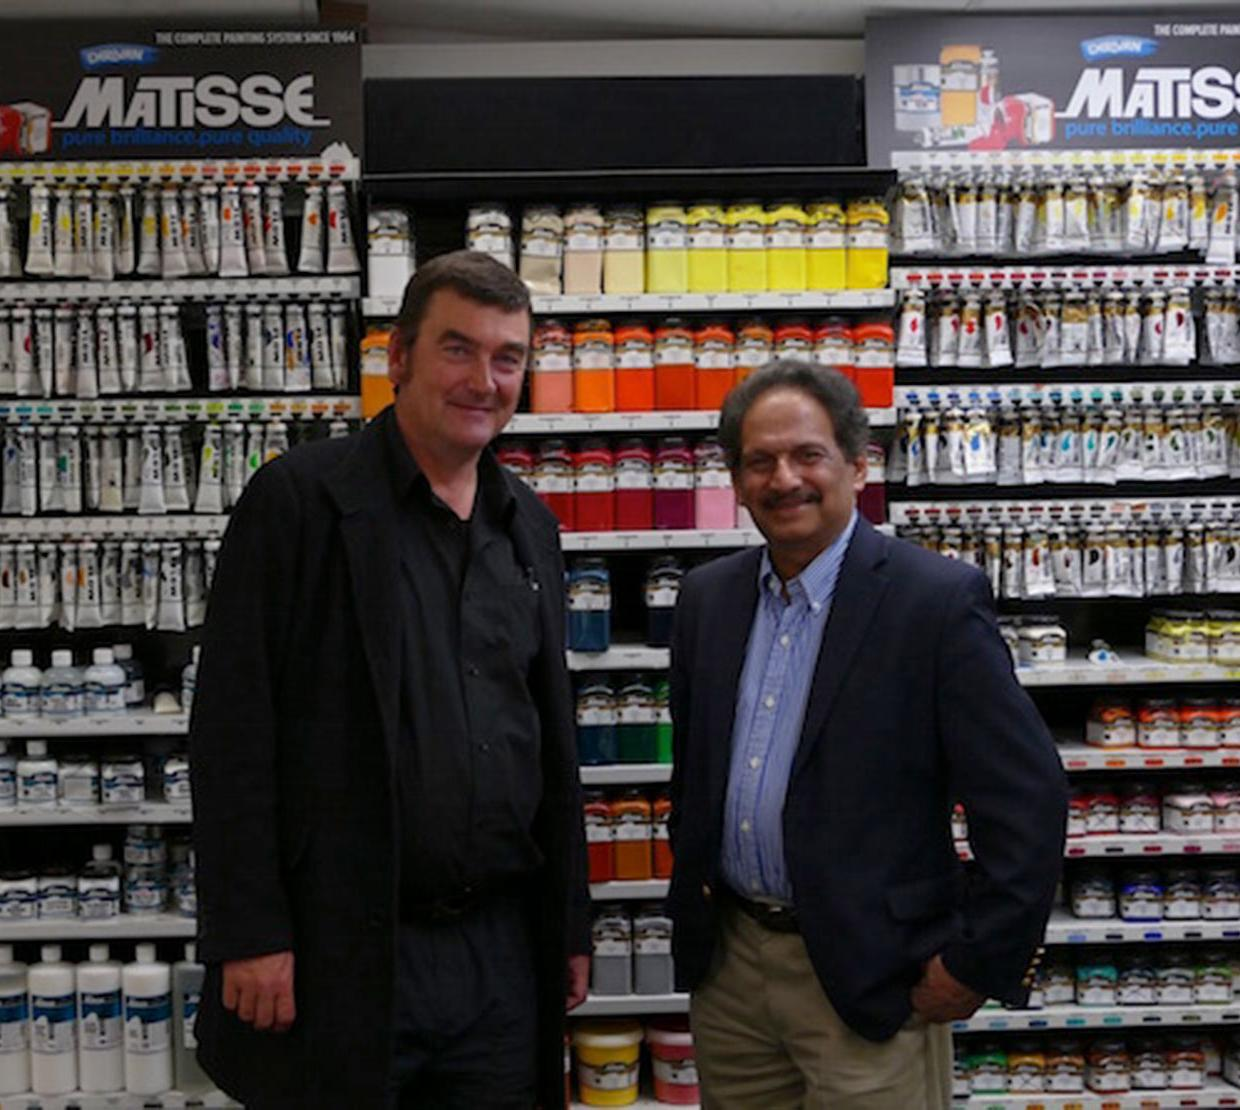 Subramanian and Matisse in paint store